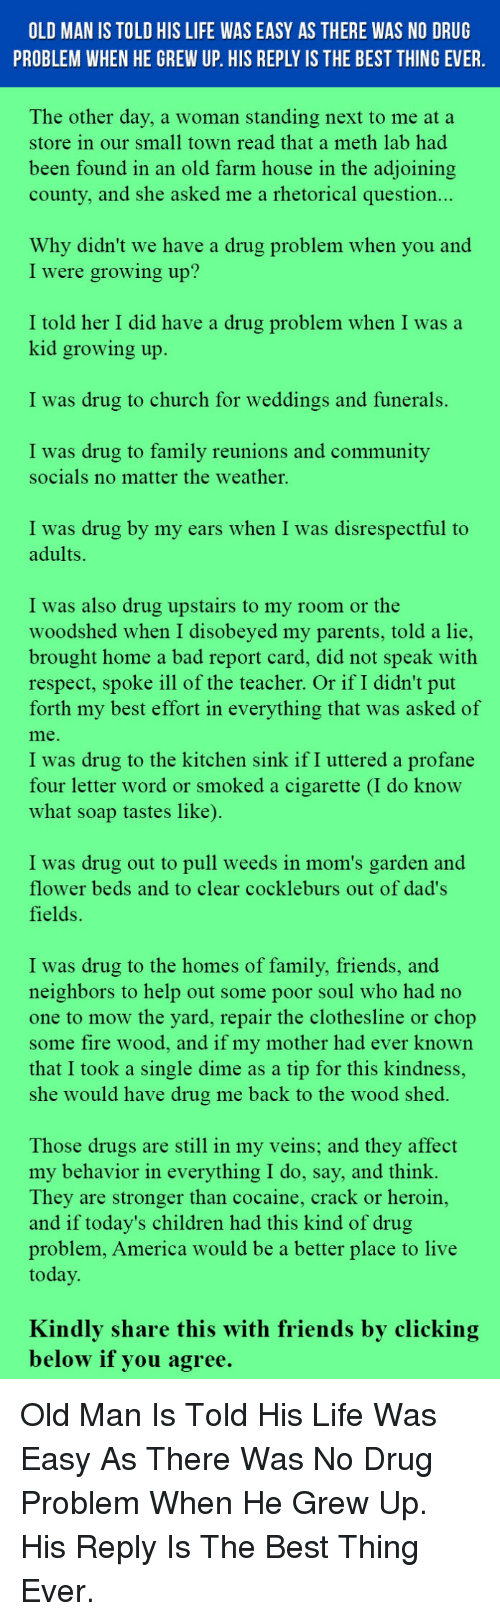 America, Bad, and Children: OLD MAN IS TOLD HIS LIFE WAS EASY AS THERE WAS NO DRUG  PROBLEM WHEN HE GREW UP. HIS REPLY IS THE BEST THING EVER  The other day, a woman standing next to me at a  store in our small town read that a meth lab had  been found in an old farm house in the adioining  county, and she asked me a rhetorical question..  Why didn't we have a drug problem when you and  I were growing up?  I told her I did have a drug problem when I was a  kid growing up  I was drug to church for weddings and funerals.  I was drug to family reunions and community  socials no matter the weather.  I was drug by my ears when I was disrespectful to  adults.  I was also drug upstairs to my room or the  woodshed when I disobeyed my parents, told a lie  brought home a bad report card, did not speak with  respect, spoke ill of the teacher. Or if I didn't put  forth my best effort in everything that was asked of  me  I was drug to the kitchen sink if I uttered a profane  four letter word or smoked a cigarette (I do know  what soap tastes like)  I was drug out to pull weeds in mom's garden and  flower beds and to clear cockleburs out of dad's  fields.  I was drug to the homes of family, friends, and  neighbors to help out some poor soul who had no  one to mow the yard, repair the clothesline or chop  some fire wood, and if my mother had ever known  that I took a single dime as a tip for this kindness,  she would have drug me back to the wood shed  Those drugs are still in my veins; and they affect  my behavior in everything I do, say, and think.  They are stronger than cocaine, crack or heroin,  and if today's children had this kind of drug  problem, America would be a better place to live  today  Kindly share this with friends by clicking  below il you agree. <p>Old Man Is Told His Life Was Easy As There Was No Drug Problem When He Grew Up. His Reply Is The Best Thing Ever.</p>